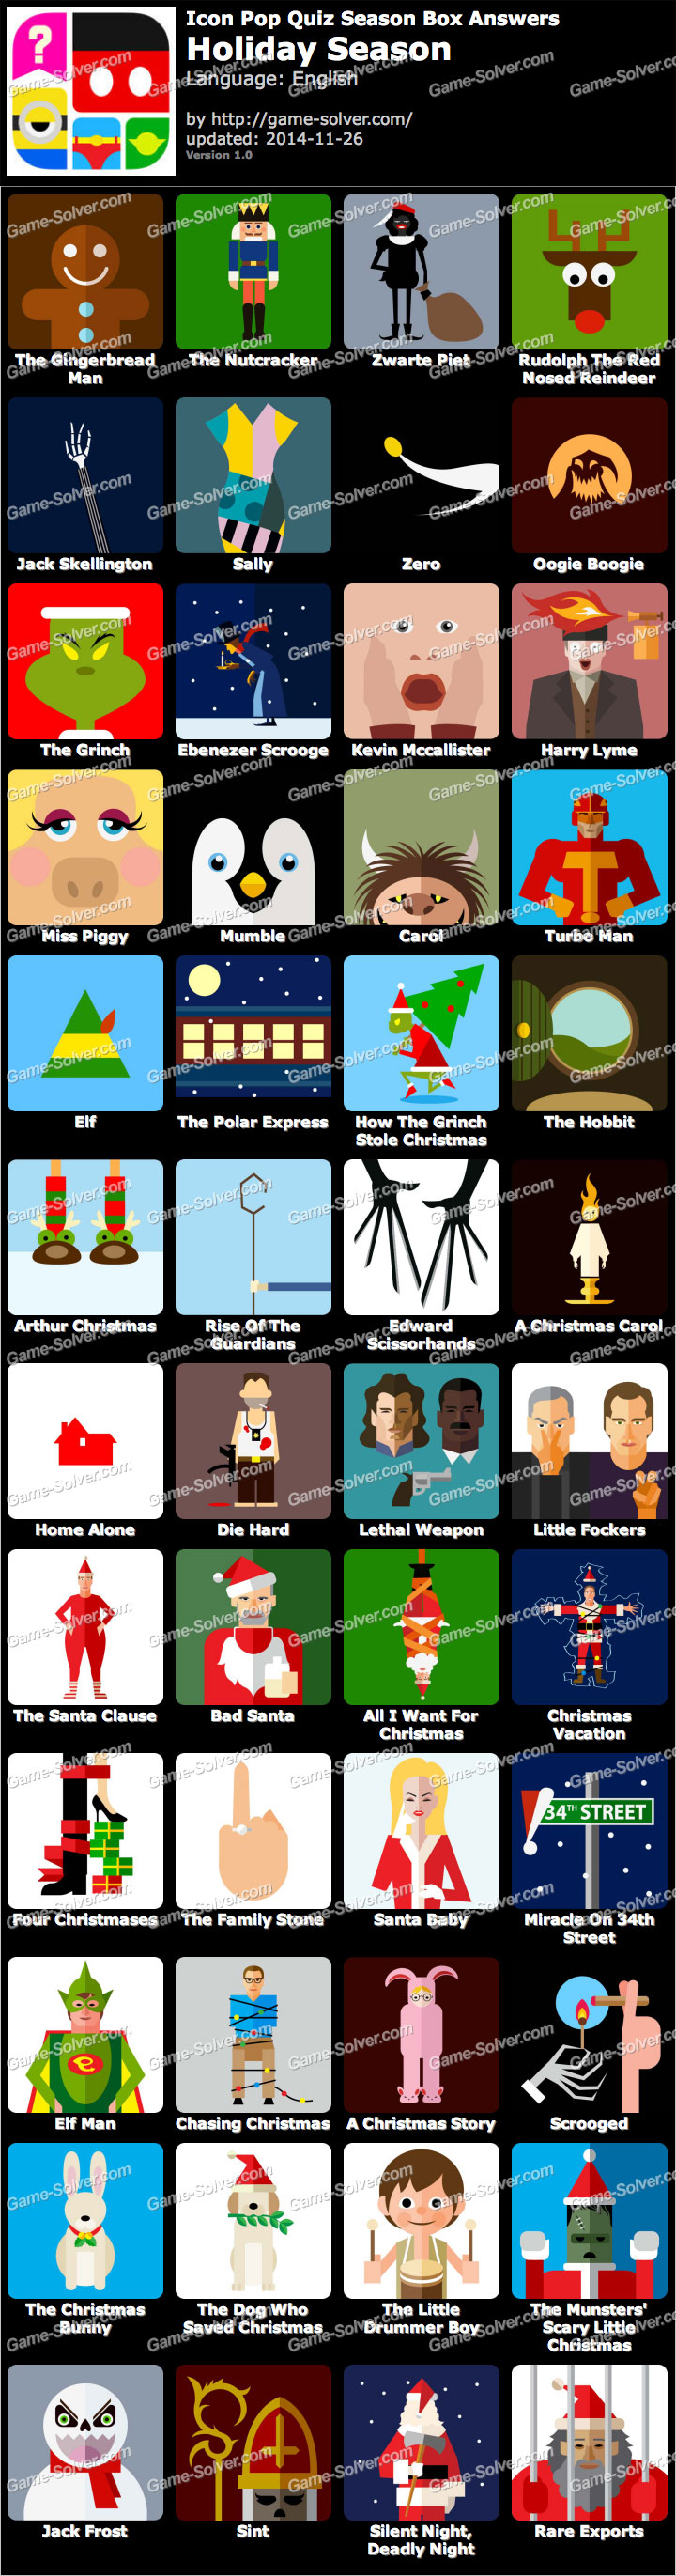 Holiday Season Icons Icon Pop Quiz Season Box